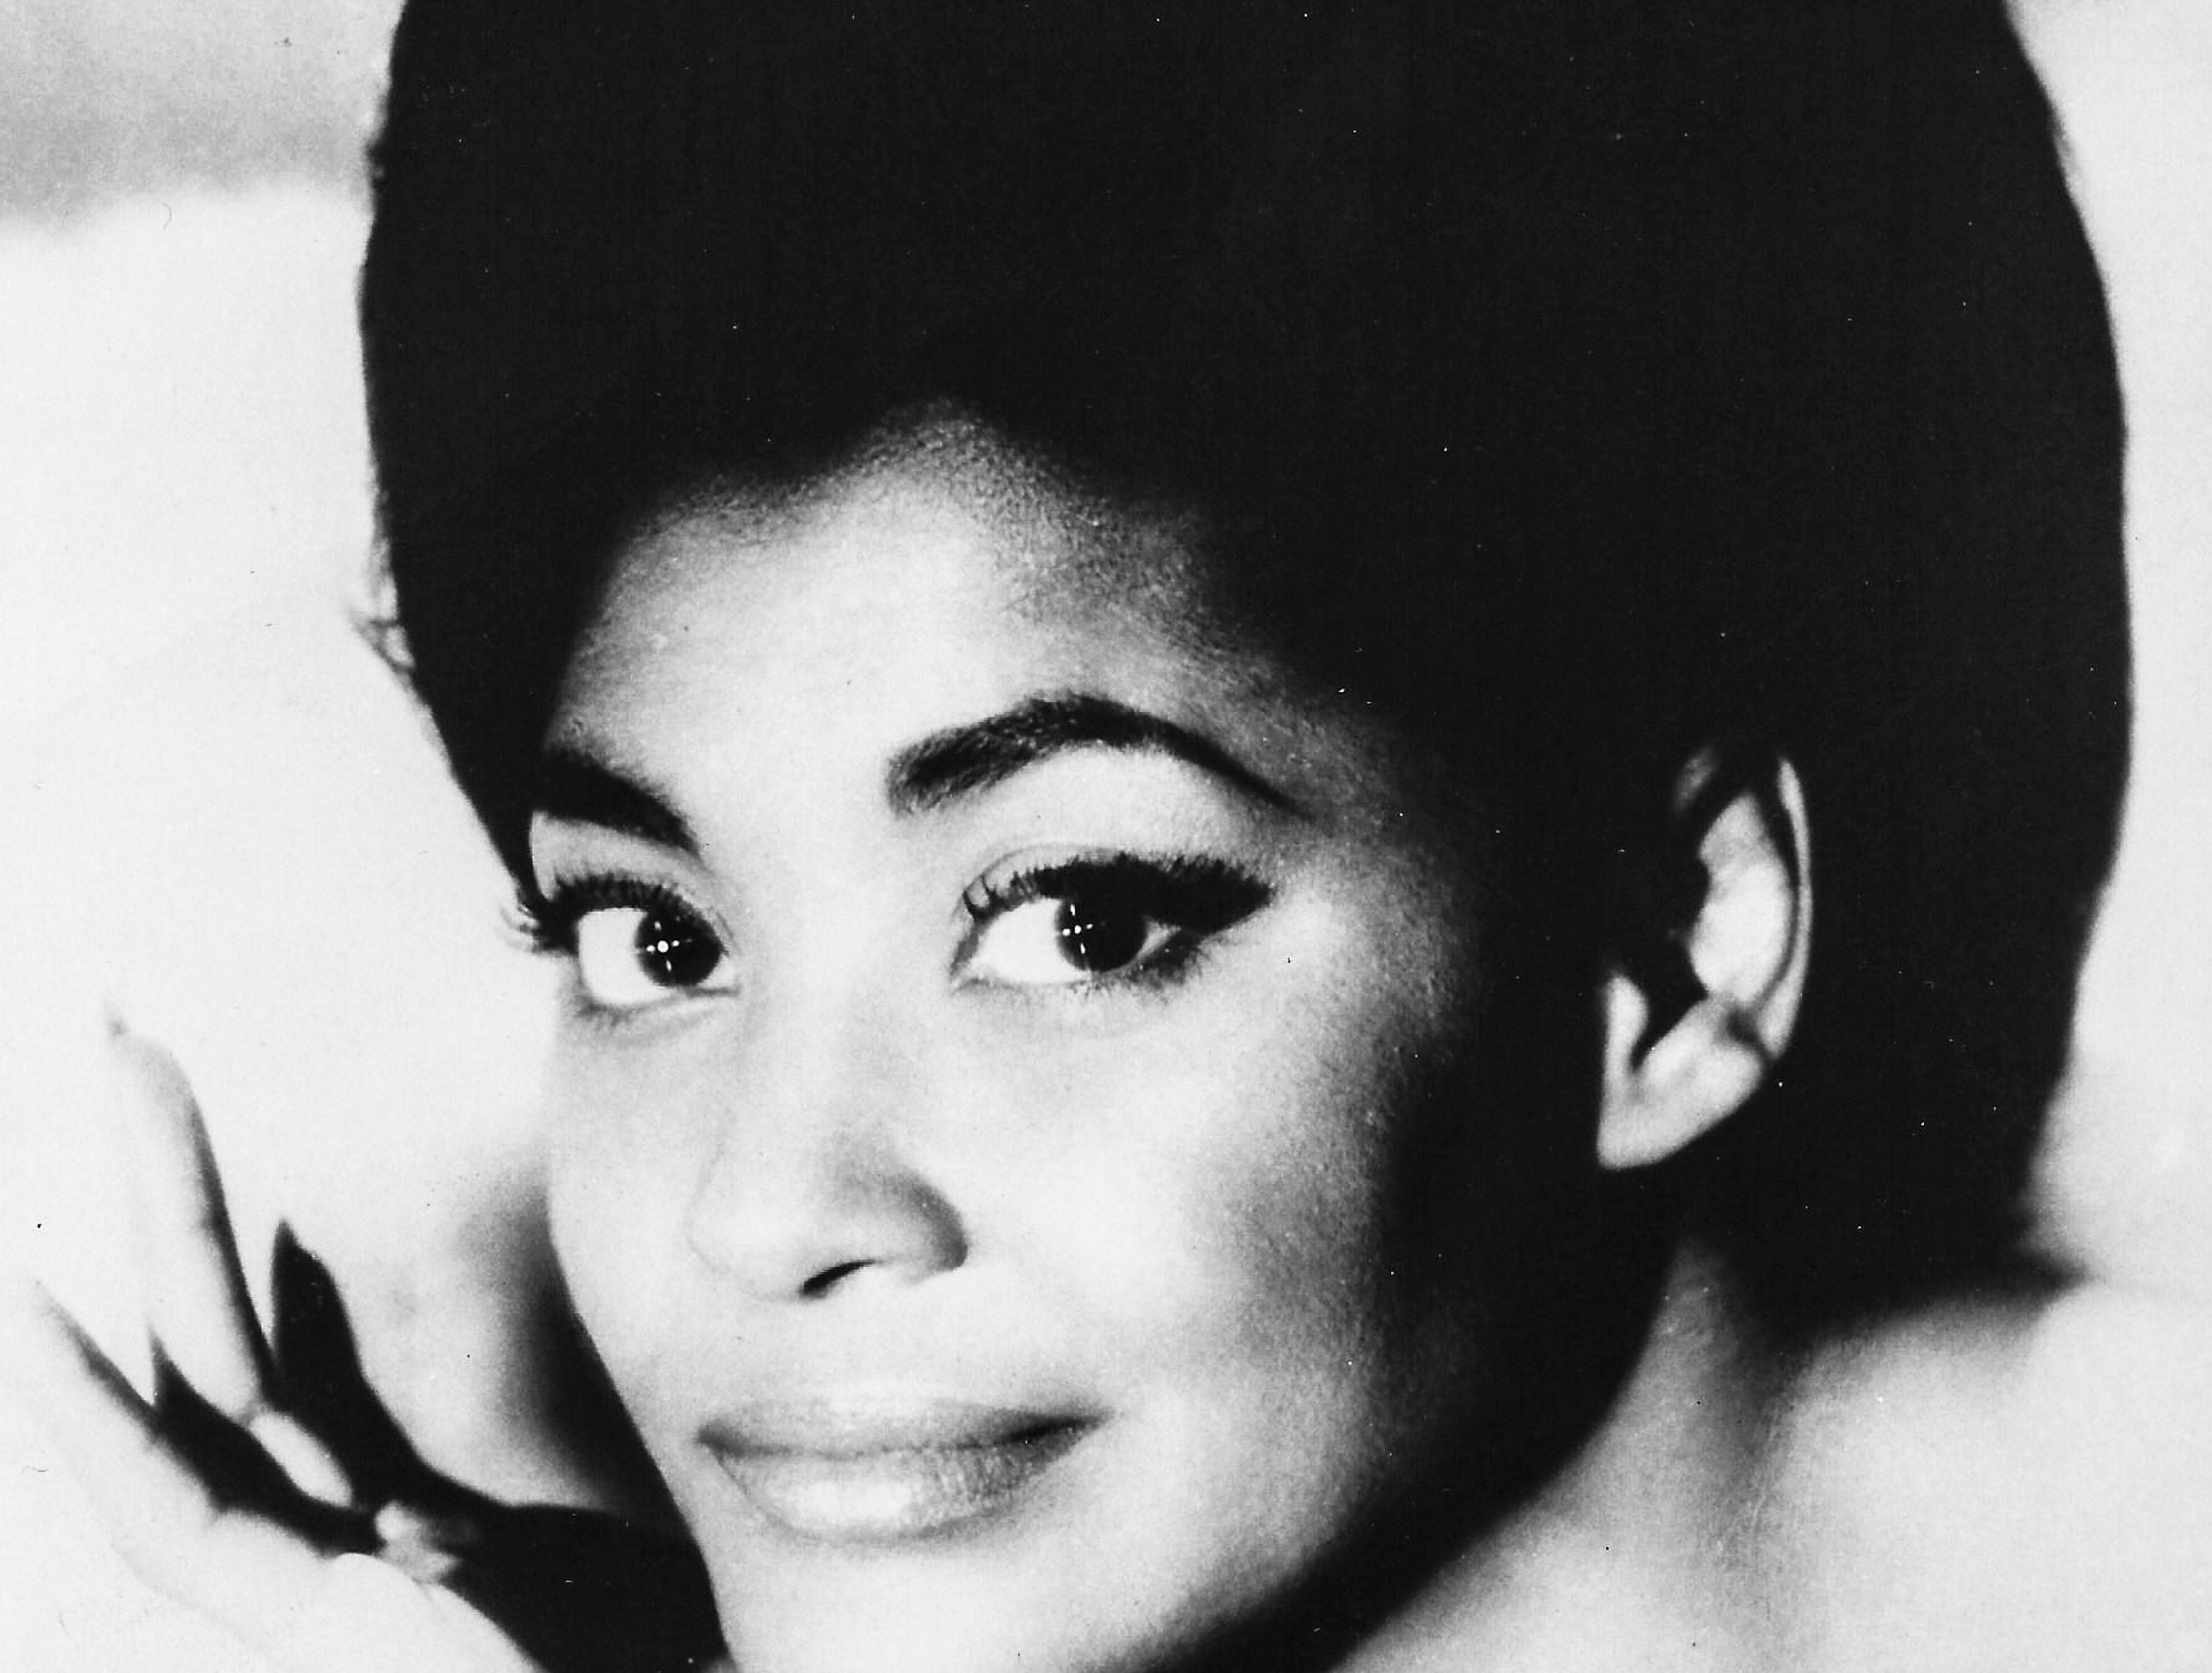 Nancy Wilson, popular singer and actress, was named Easter Seal Goodwill Ambassadress for the 1972 National Easter Seal Society Campaign, February 28-April 2. Miss Wilson will play a leading role in enlisting public support for the society's annual appeal to raise funds to provide services to 380,000 handicapped children and adults.